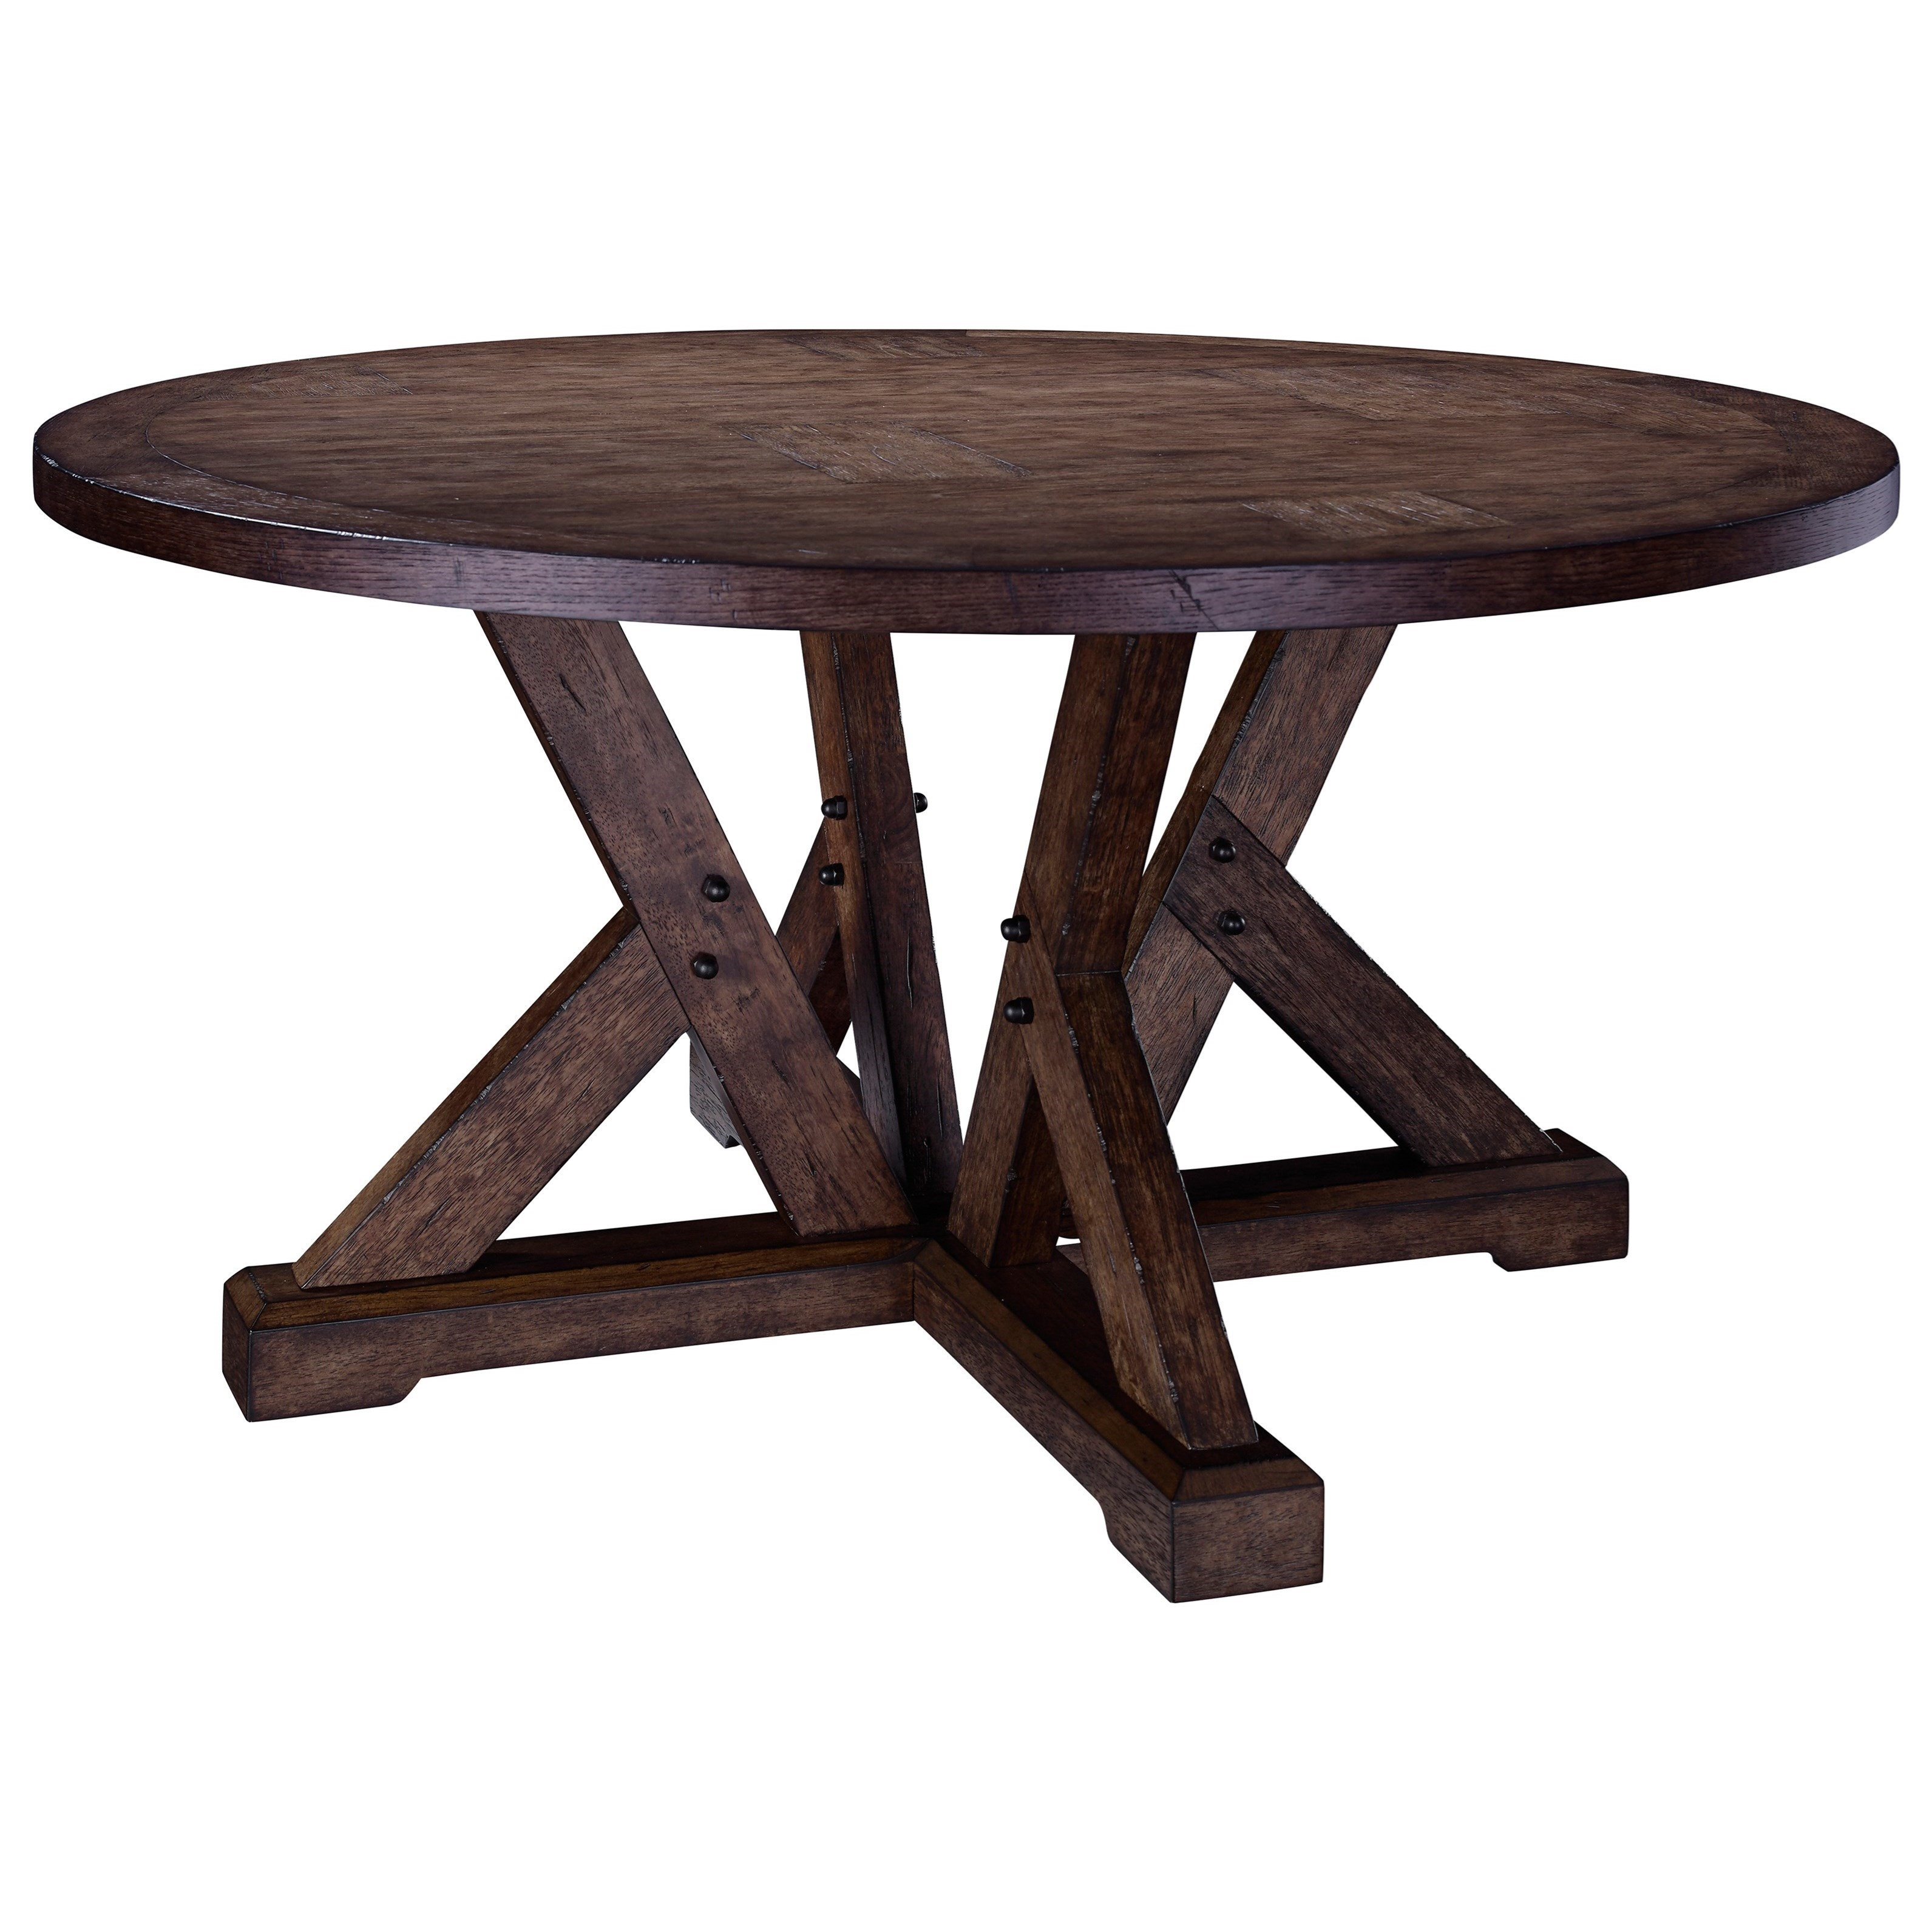 Broyhill Furniture Bedford Avenue Dobbin Street Piece Works Dining Table - Item Number: 8615-503